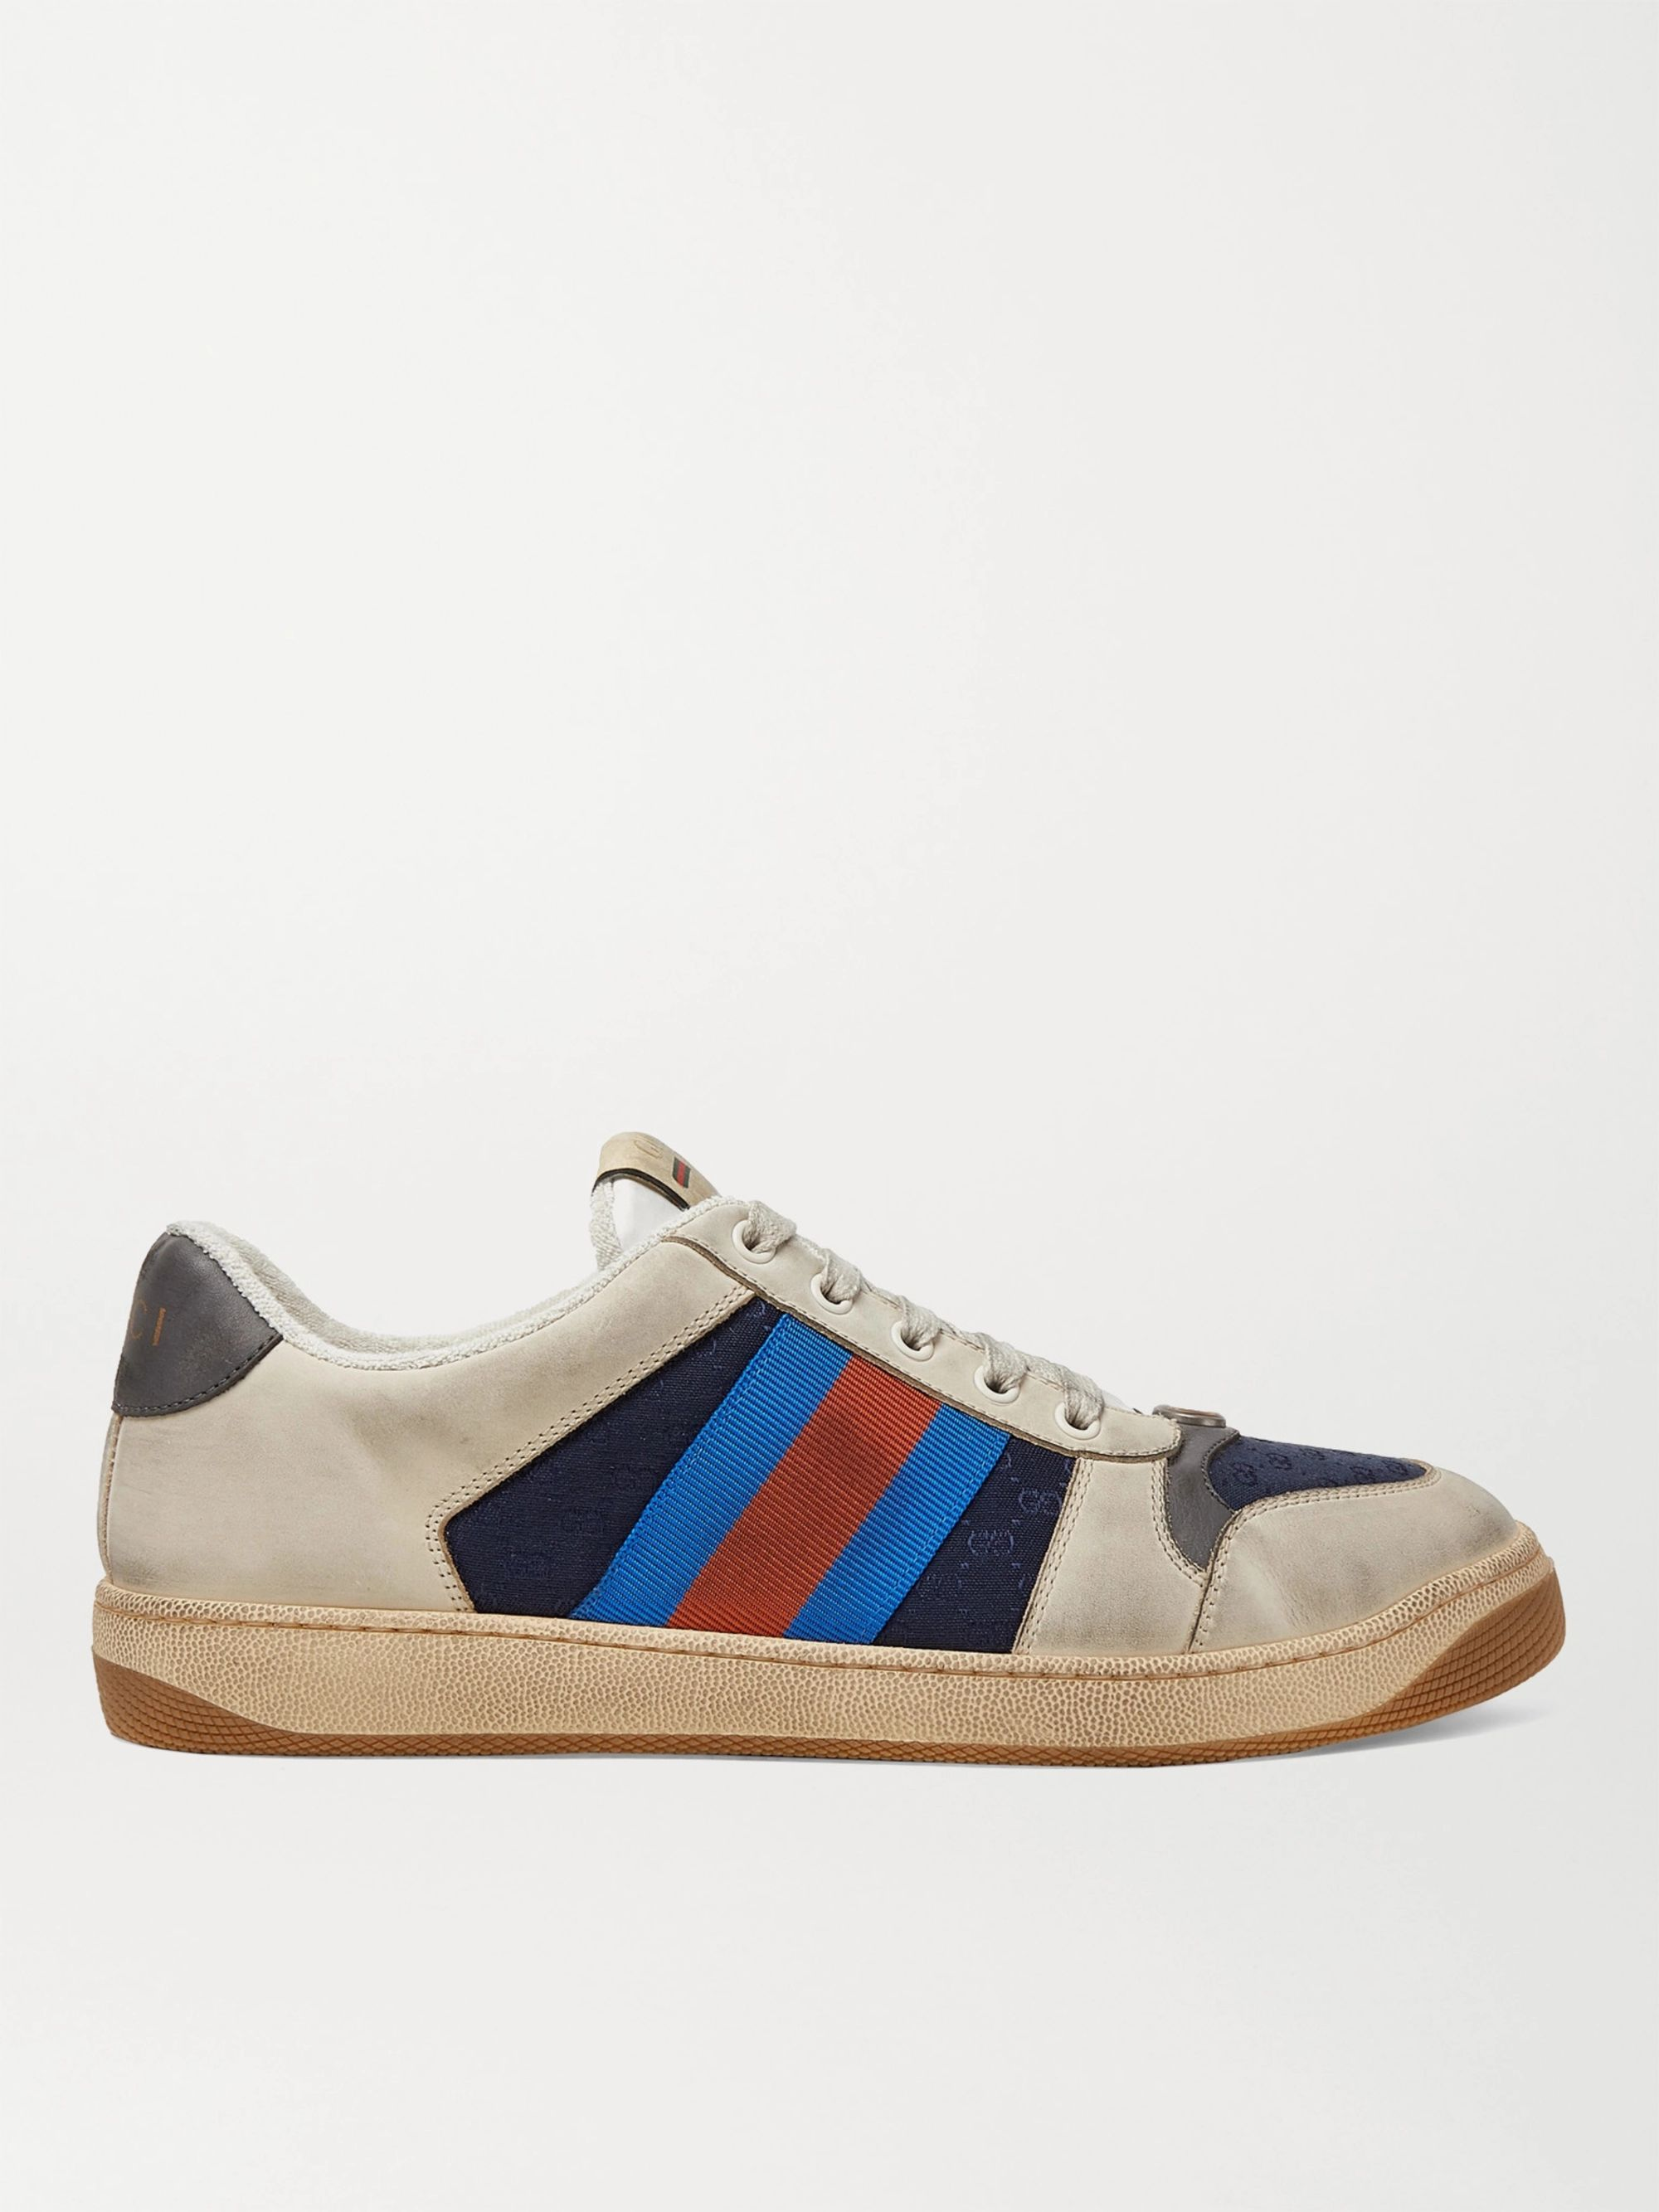 Gucci Screener Webbing-Trimmed Leather, Suede and Canvas Sneakers